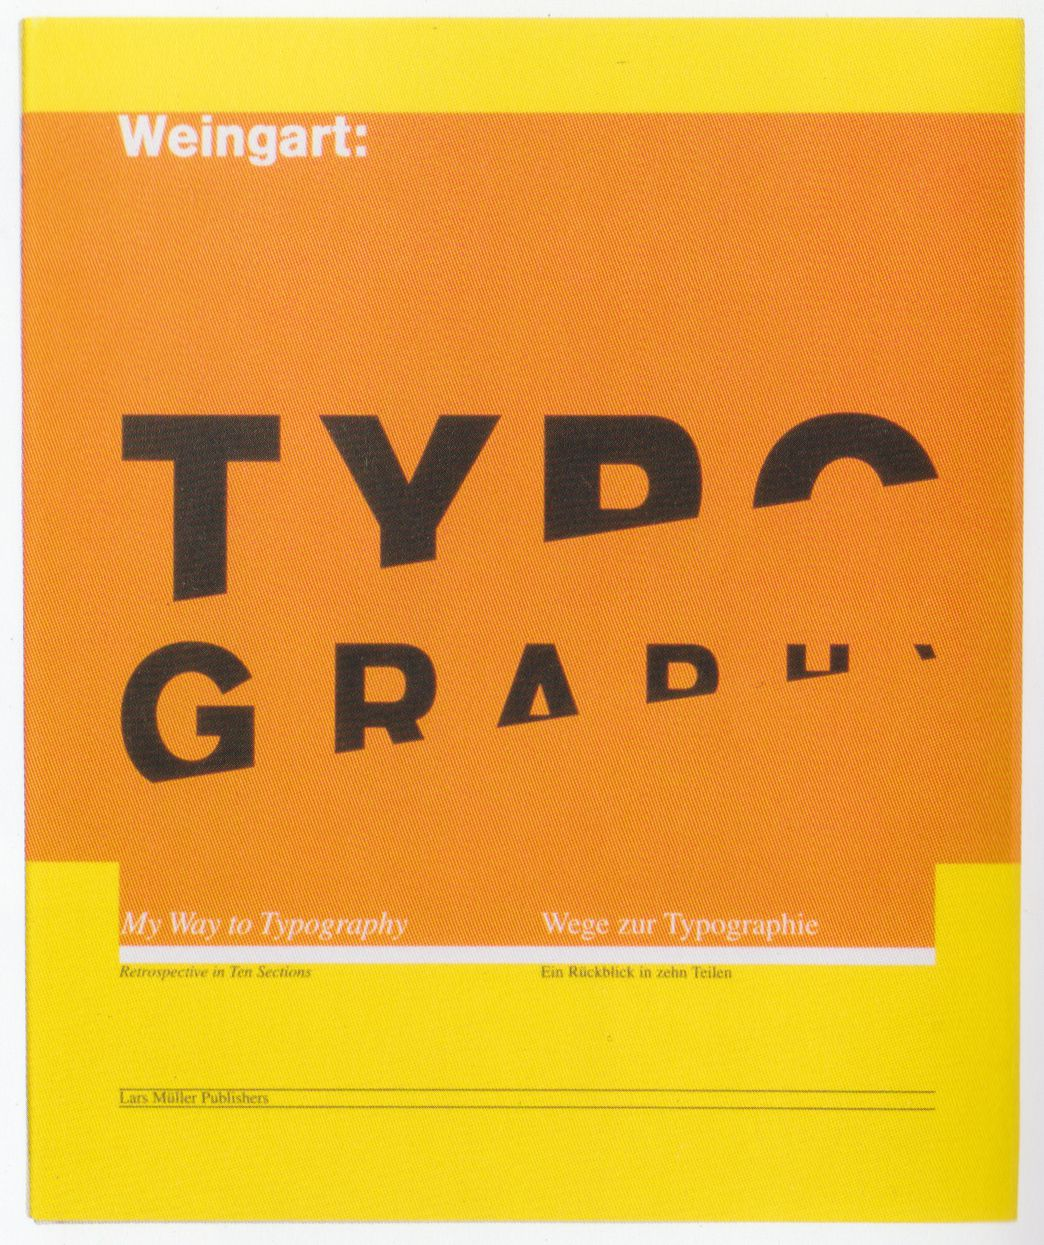 Heres An Example Of Analogous Color Use From Wolfgang Weingarts Book About Typography